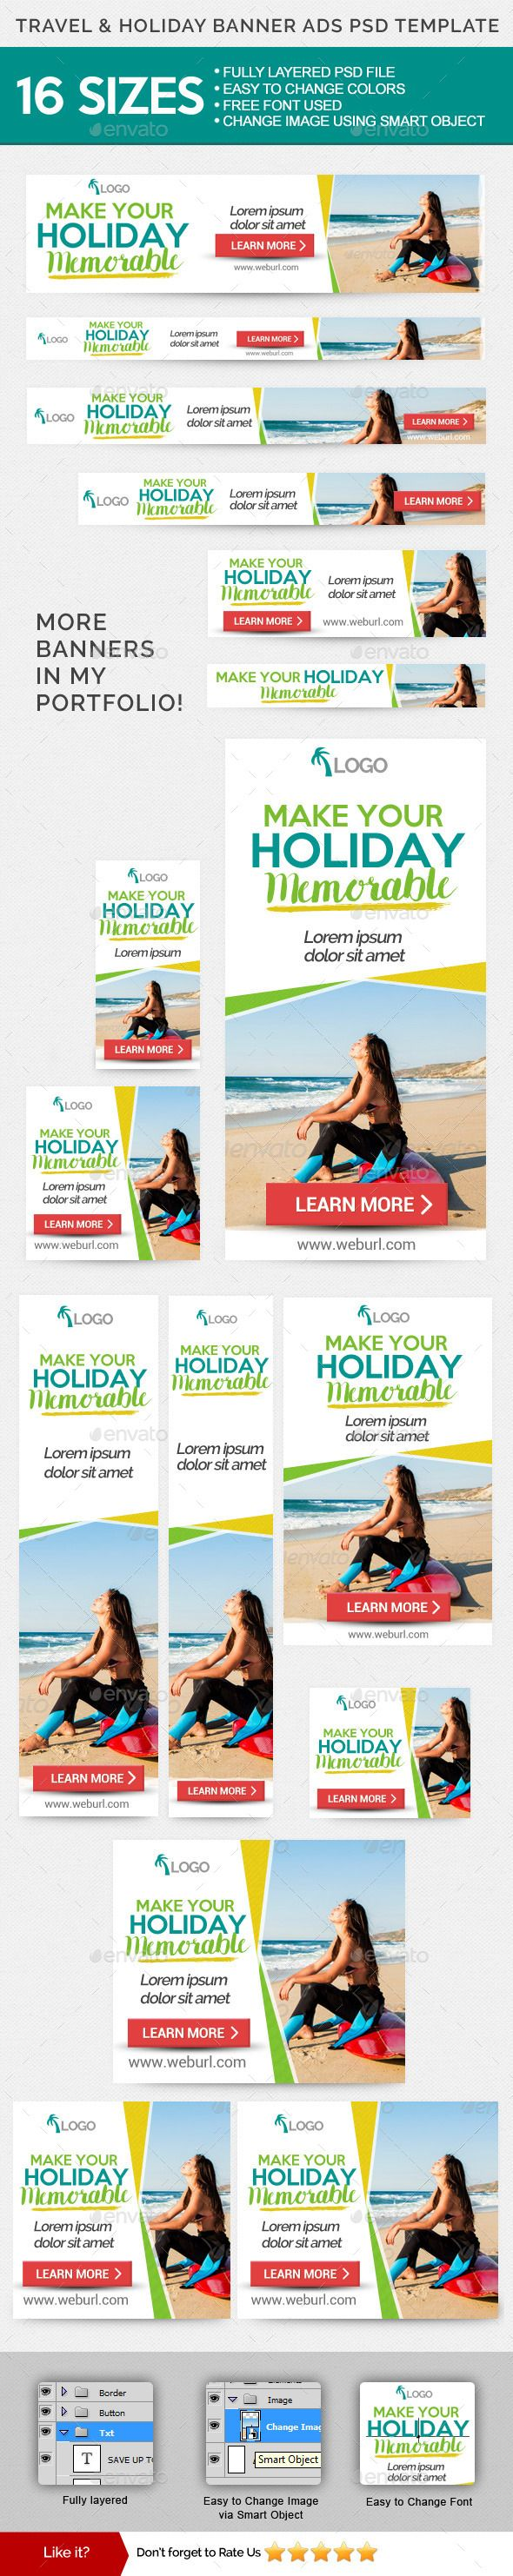 Travel & Holiday Banners Ads PSD Template Template #design Download: http://graphicriver.net/item/travel-holiday-banners-ads-psd-template/11727043?ref=ksioks